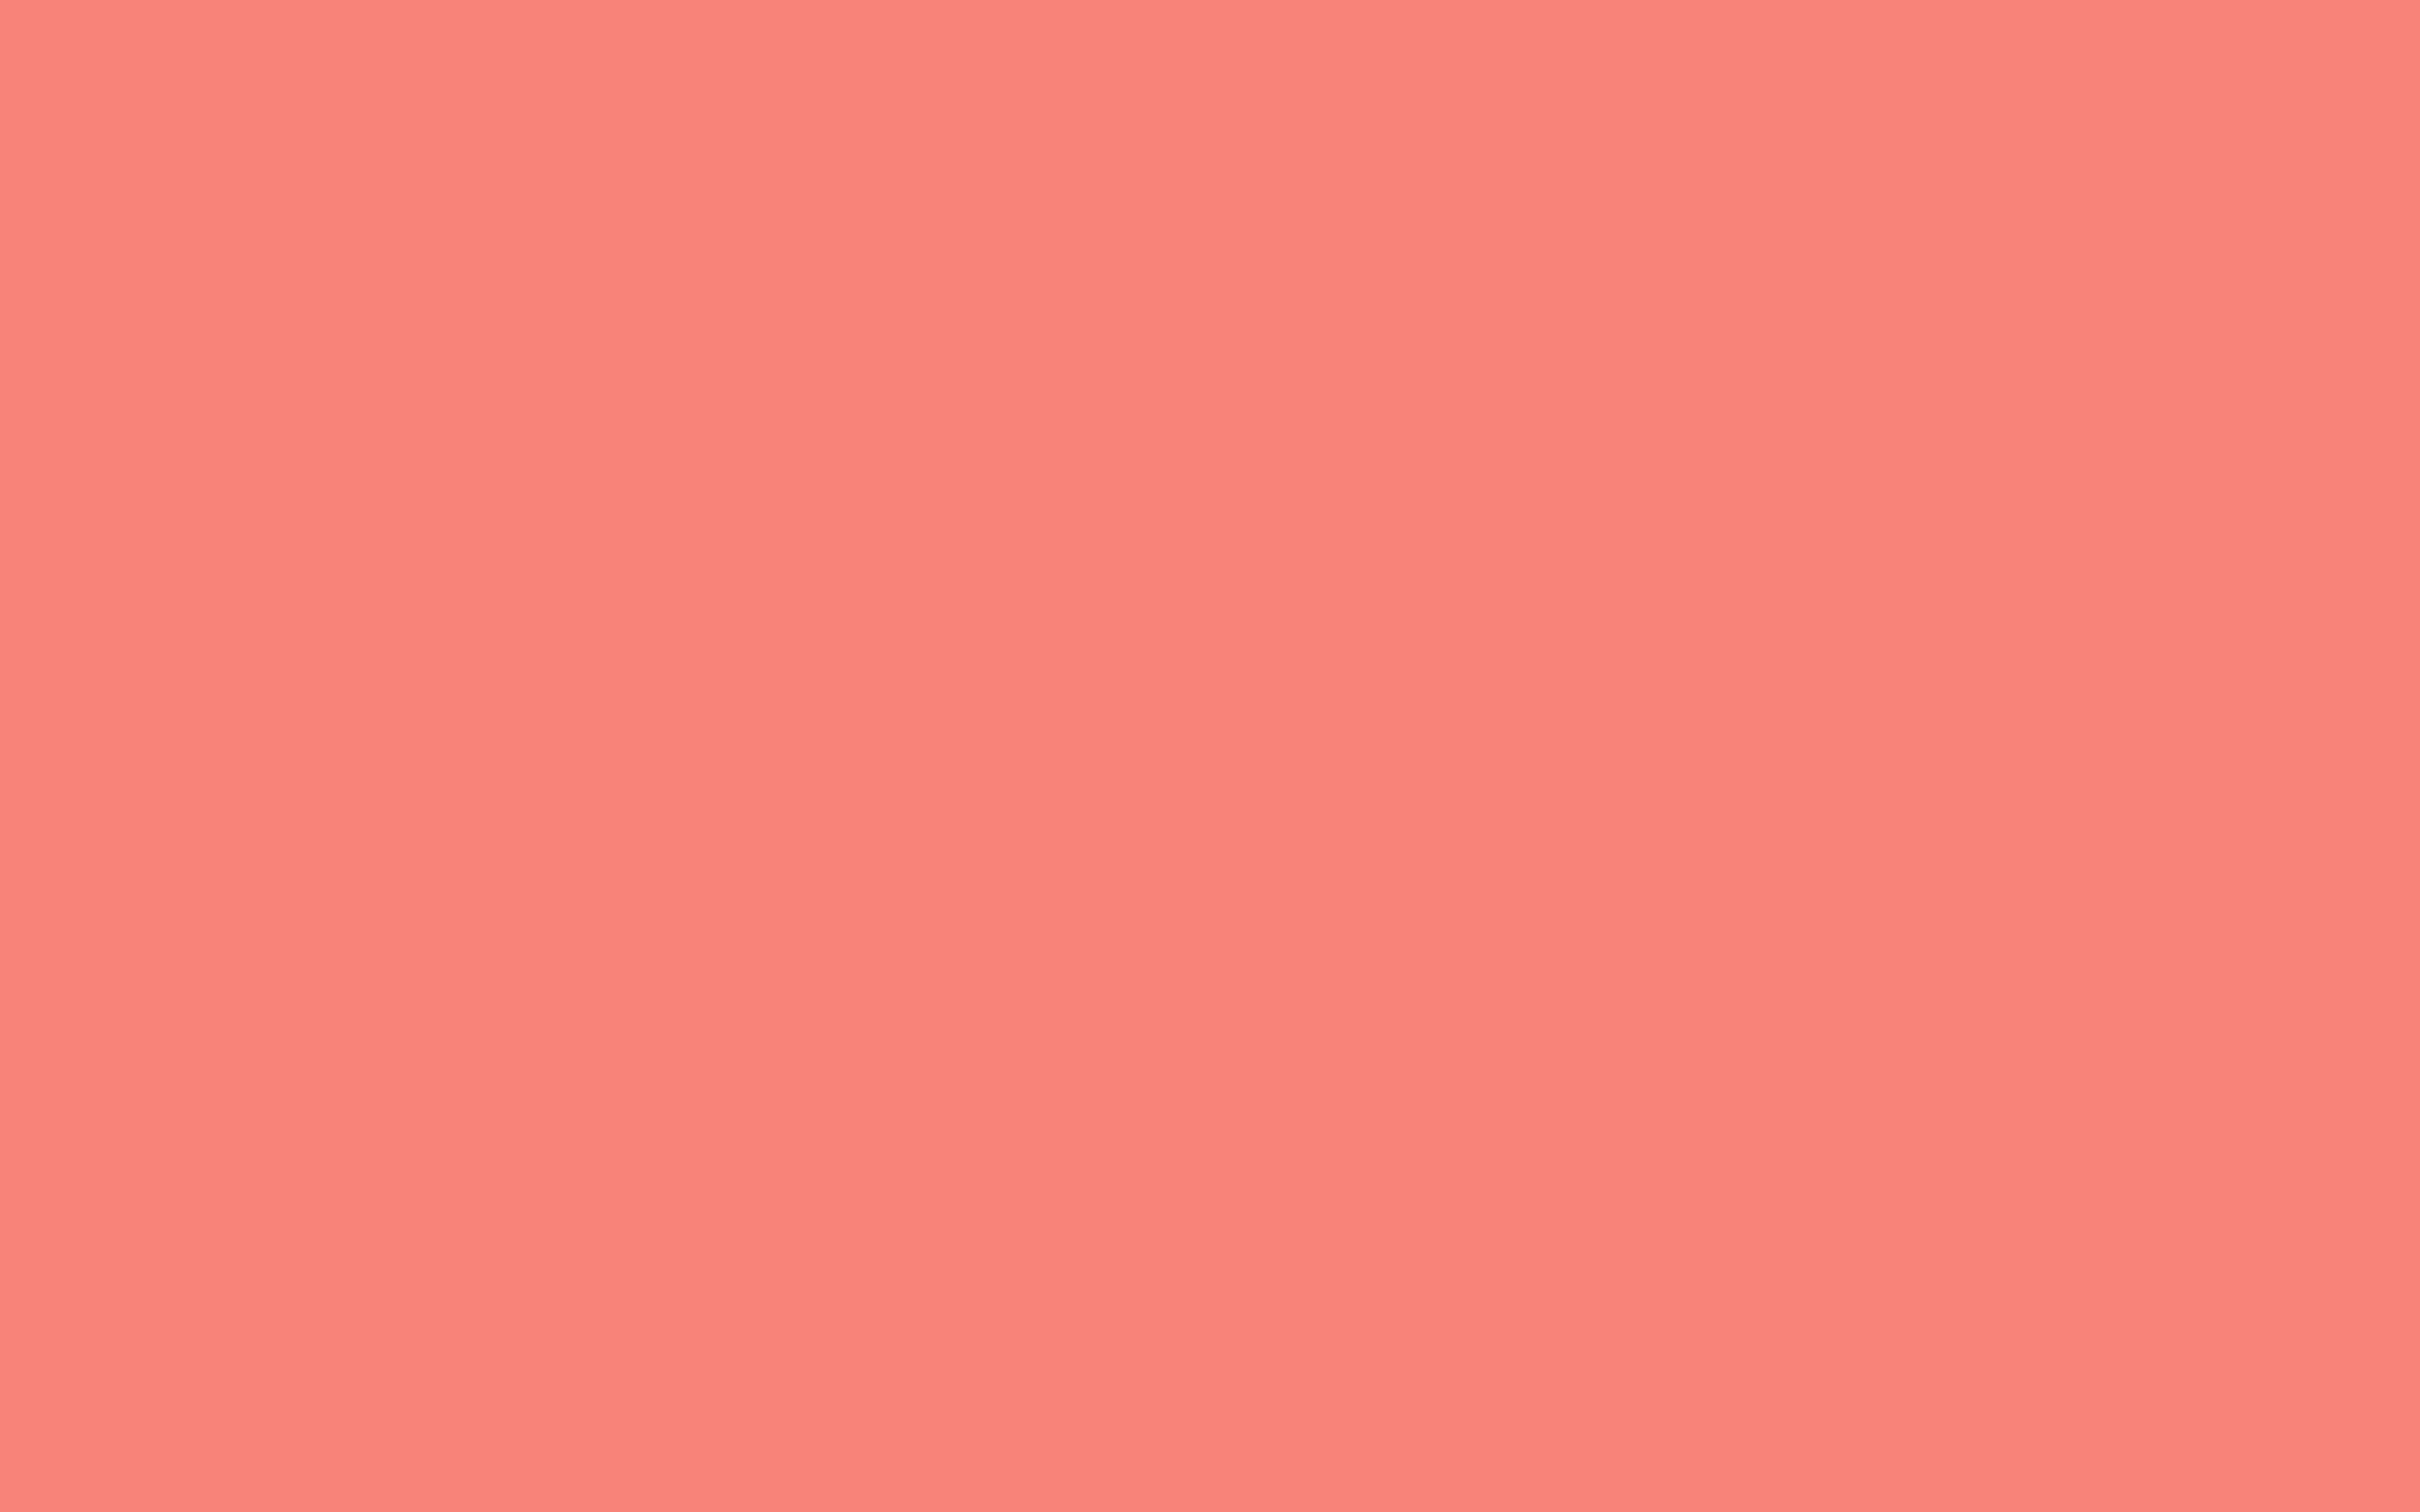 2560x1600 Coral Pink Solid Color Background